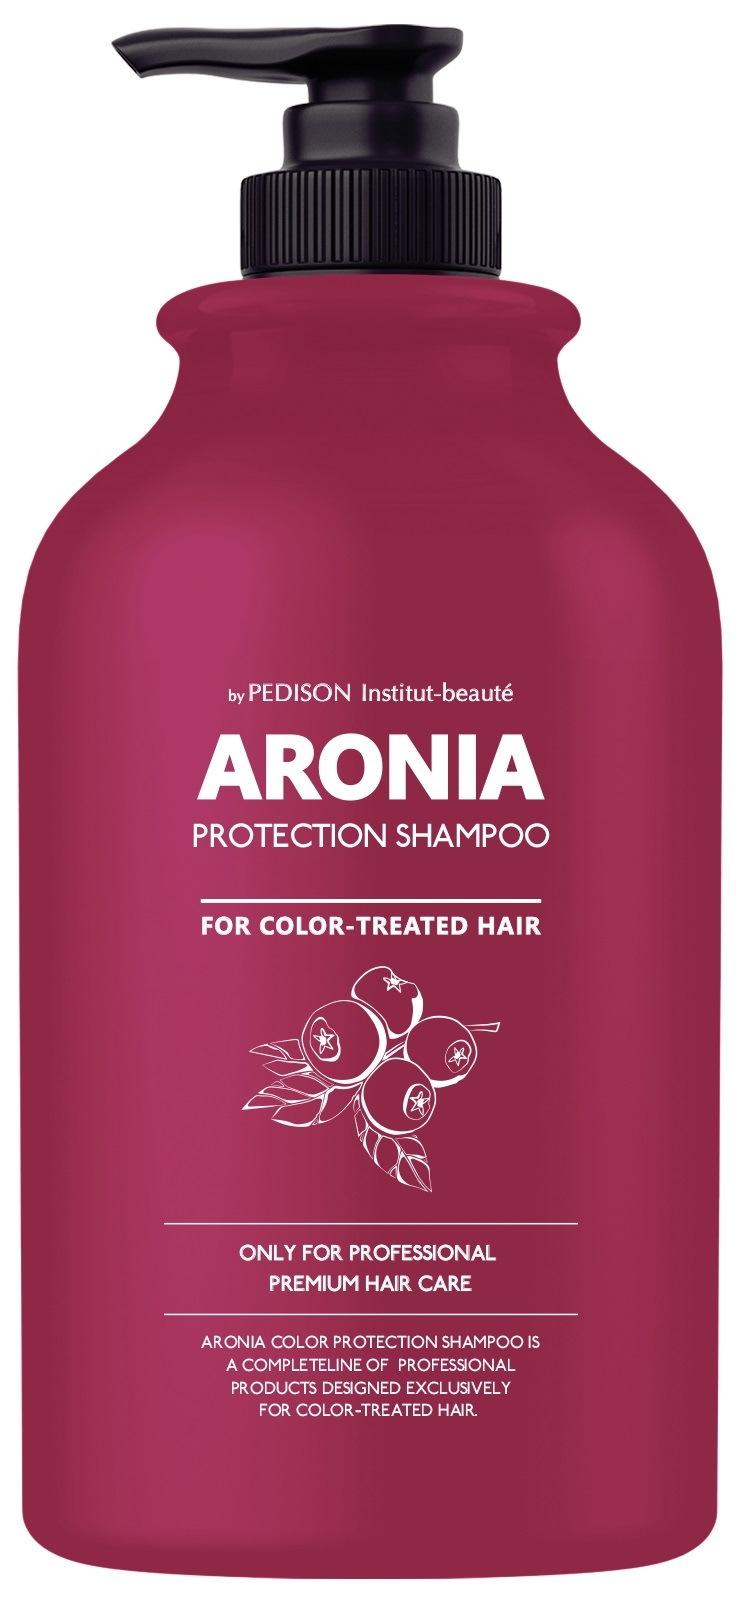 Шампуни [Pedison] Шампунь для волос АРОНИЯ Institute-beaut Aronia Color Protection Shampoo, 500 мл 004761.jpg